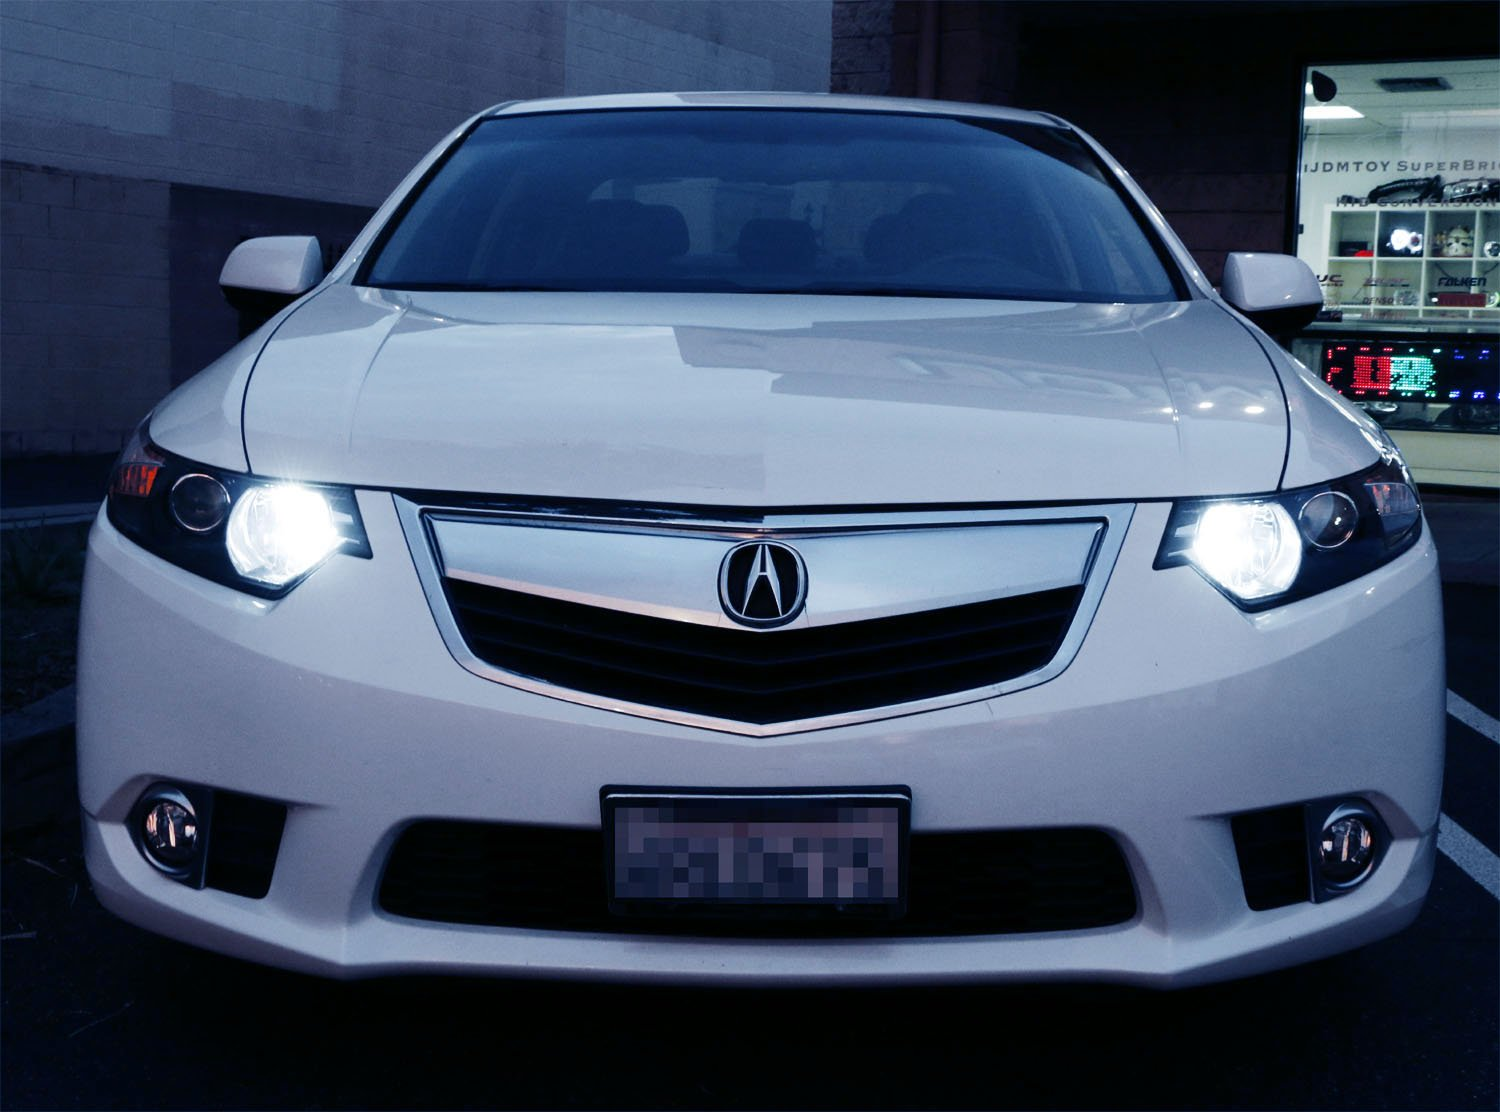 iJDMTOY 8K Blue 80W 16-CREE 9005 LED High Beam Daytime Running Lights Kit Compatible For Acura TSX RDX TL MDX Civic Accord CRZ